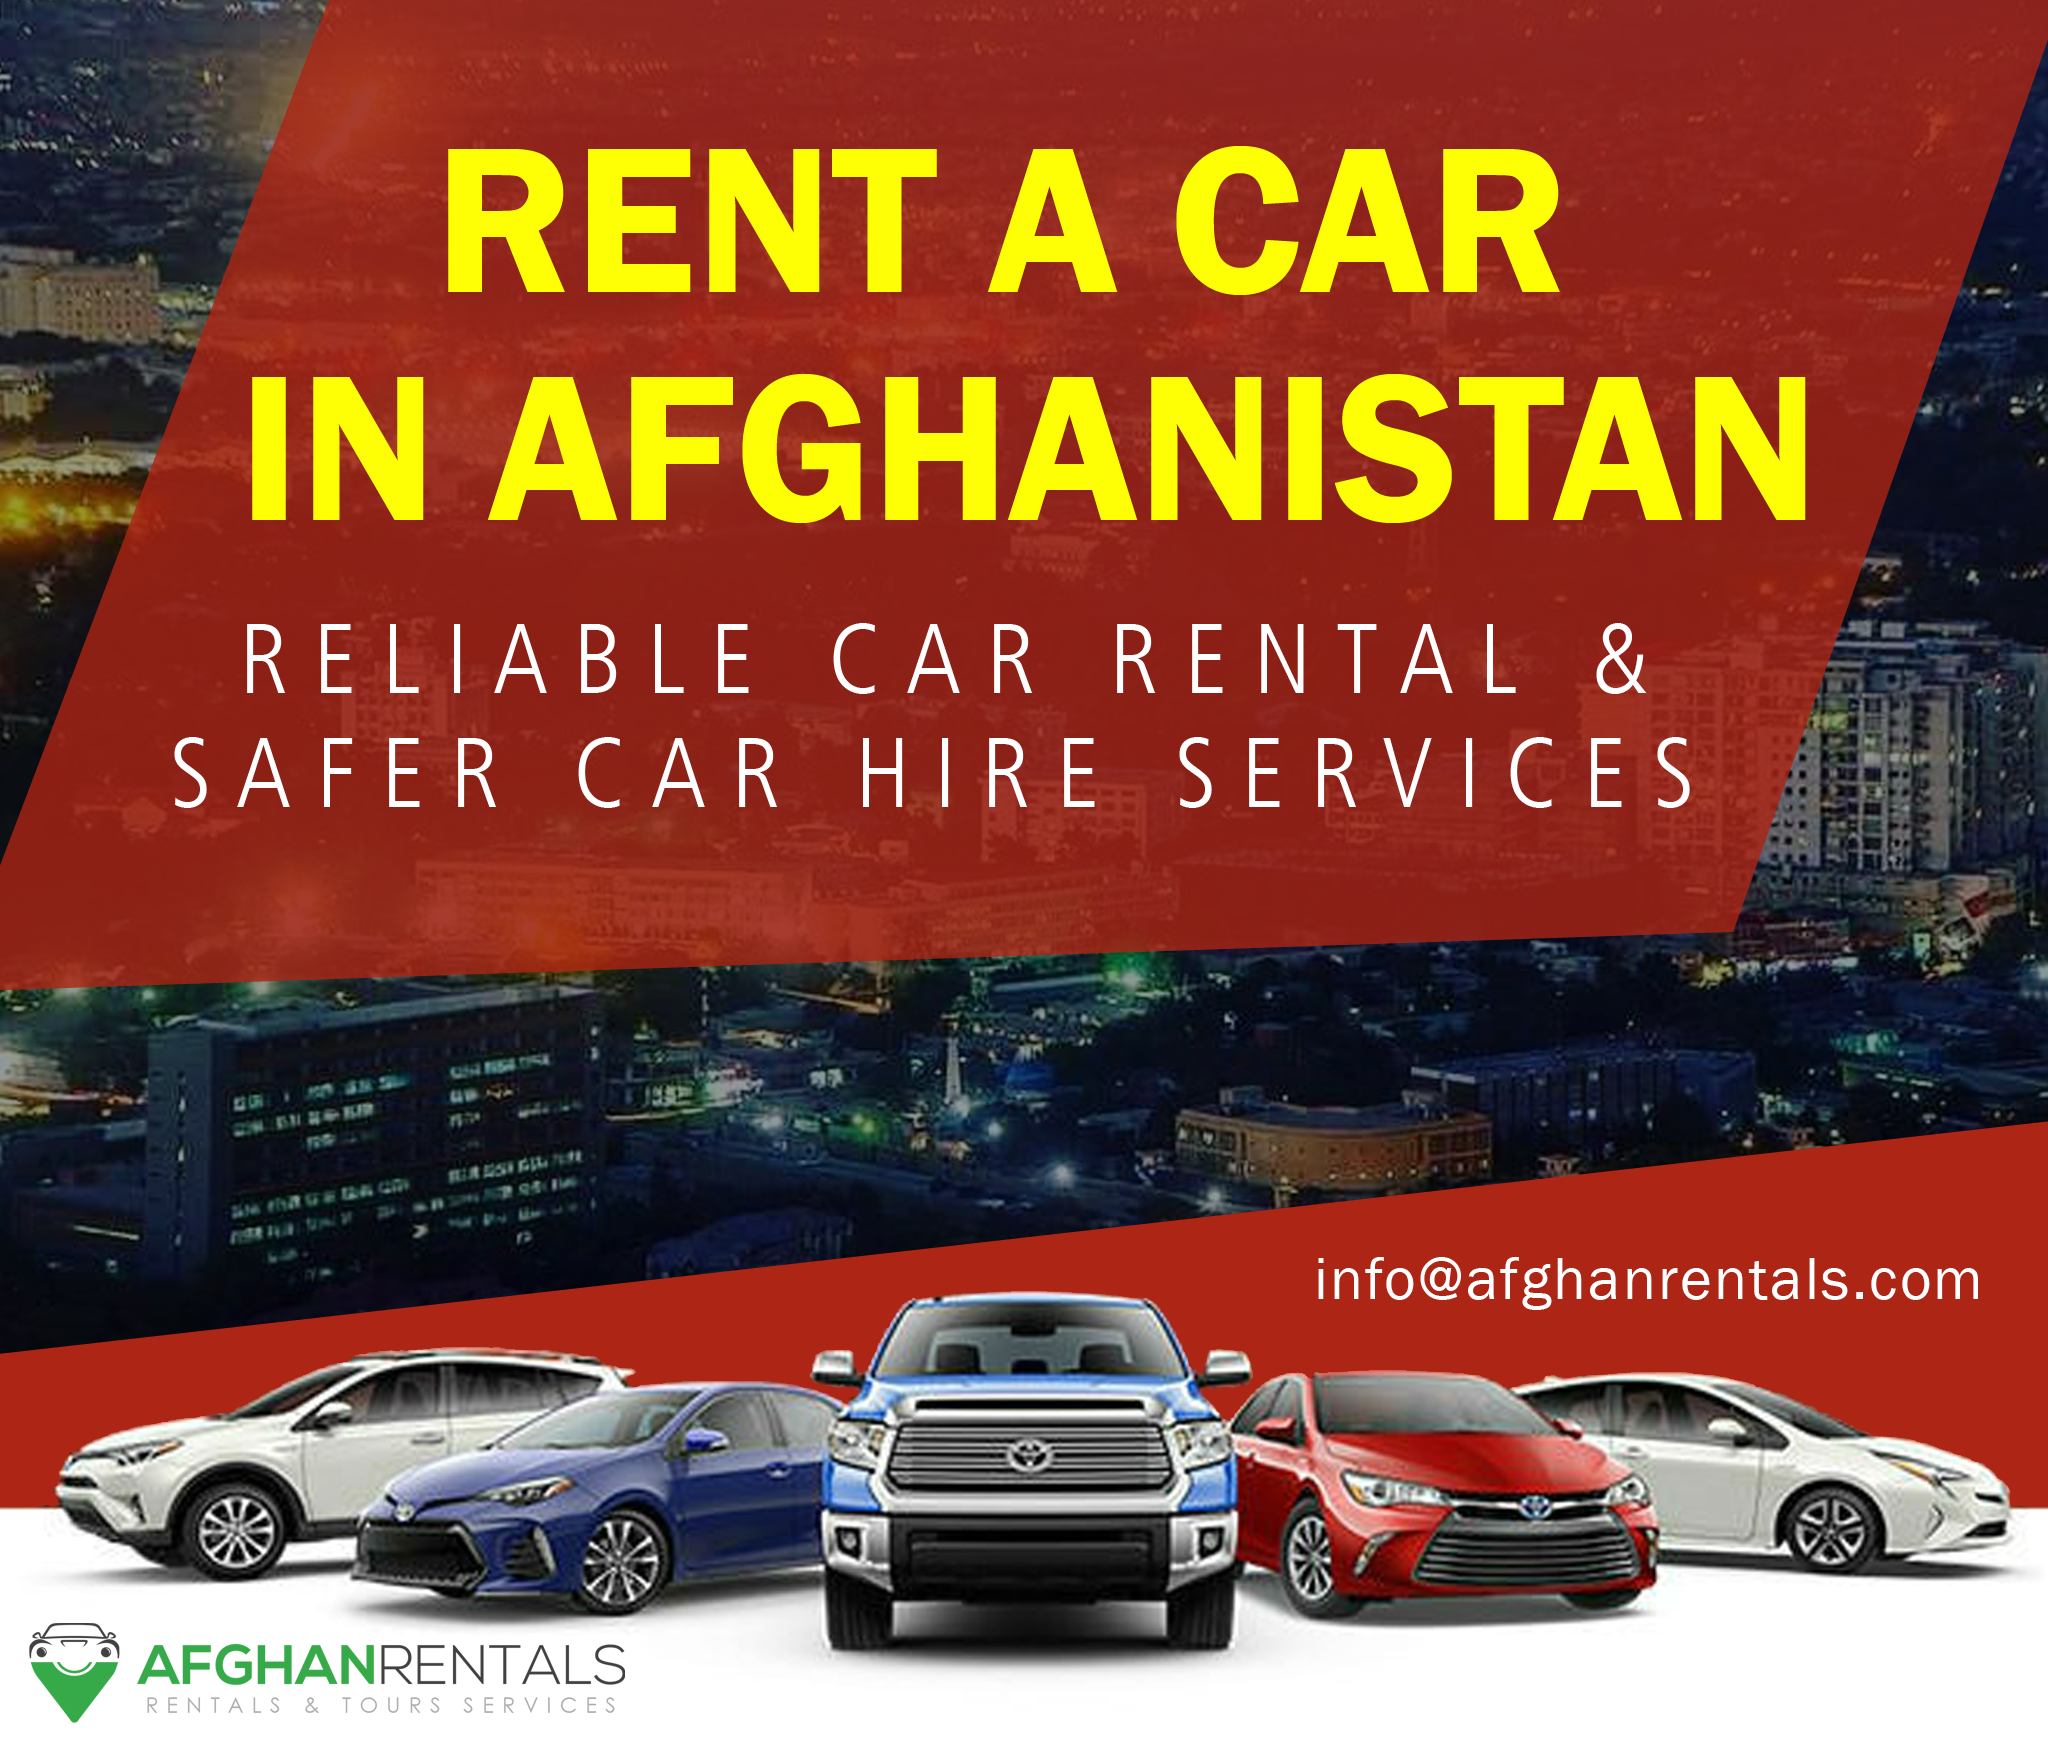 Rental And Pricing Information: Car Rental In Afghanistan! Reliable Car Rentals And Car